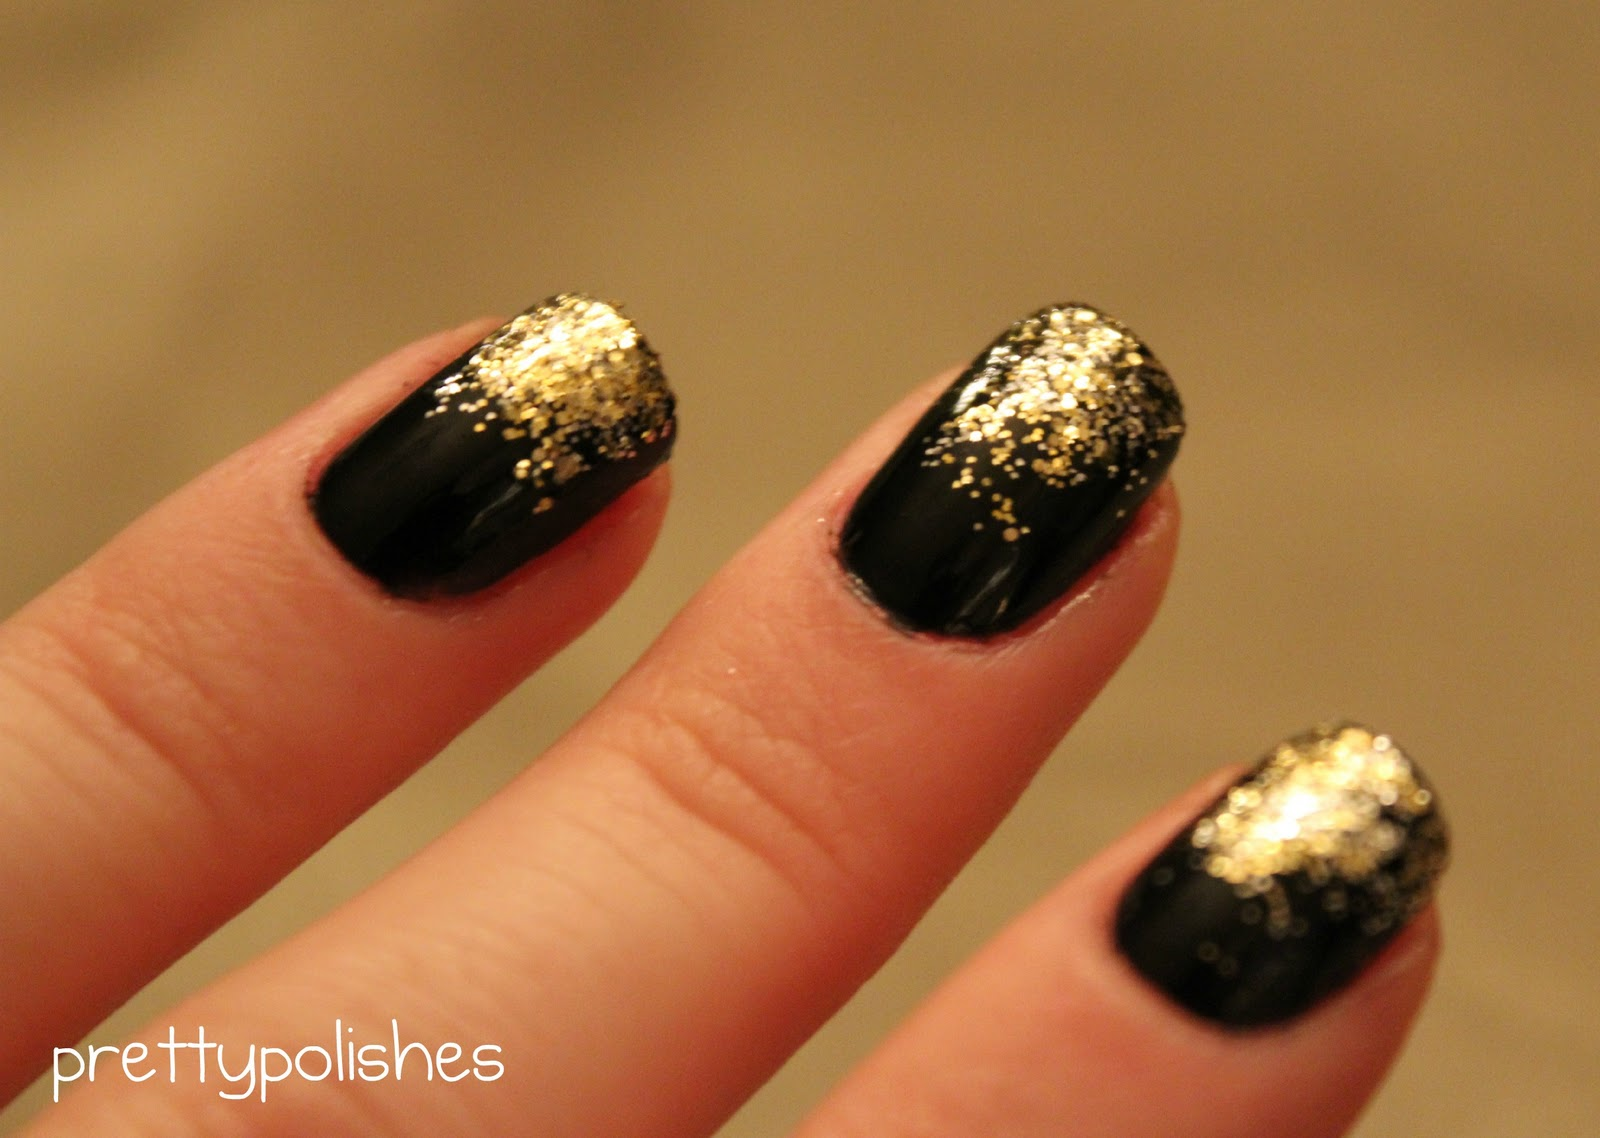 prettypolishes: New Years Eve Nails